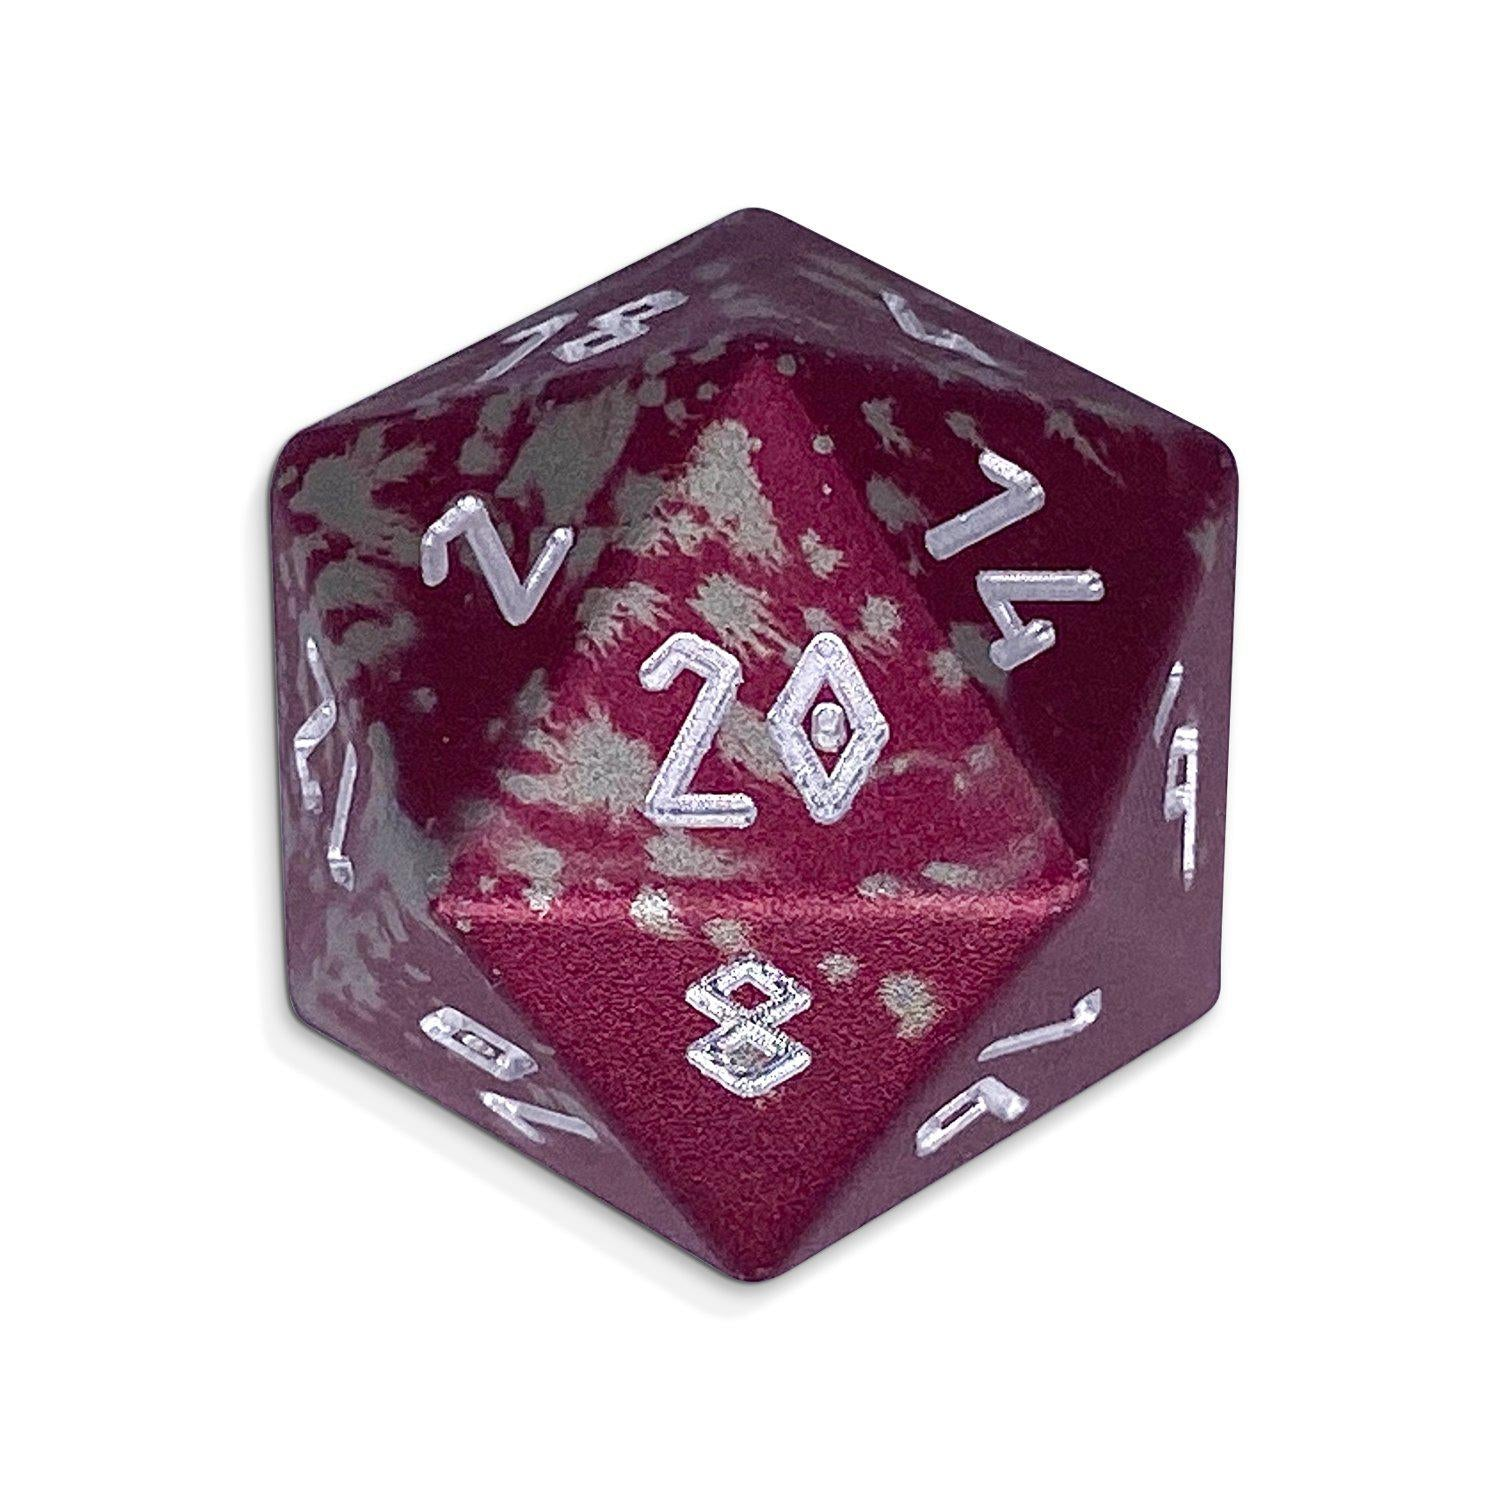 Single Wondrous Dice® D20 in Kraken by Norse Foundry 6063 Aircraft Grade Aluminum